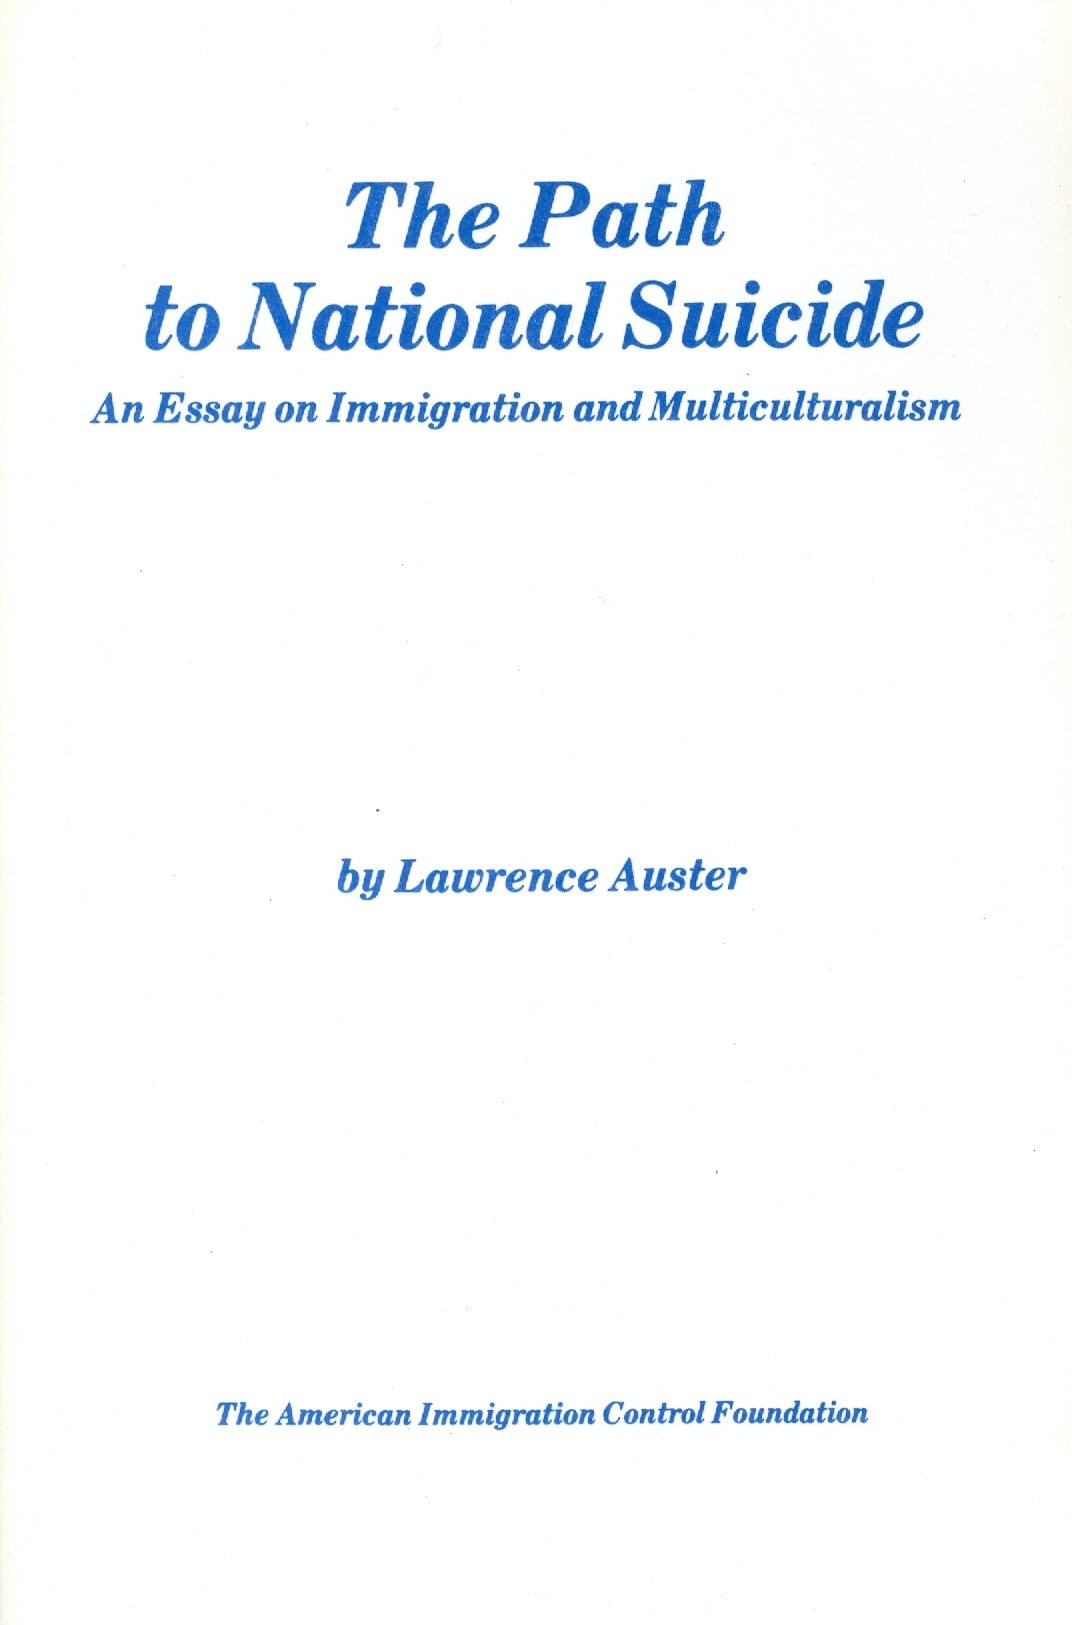 the path to national suicide an essay on immigration and the path to national suicide an essay on immigration and multiculturalism lawrence auster 9780936247120 com books